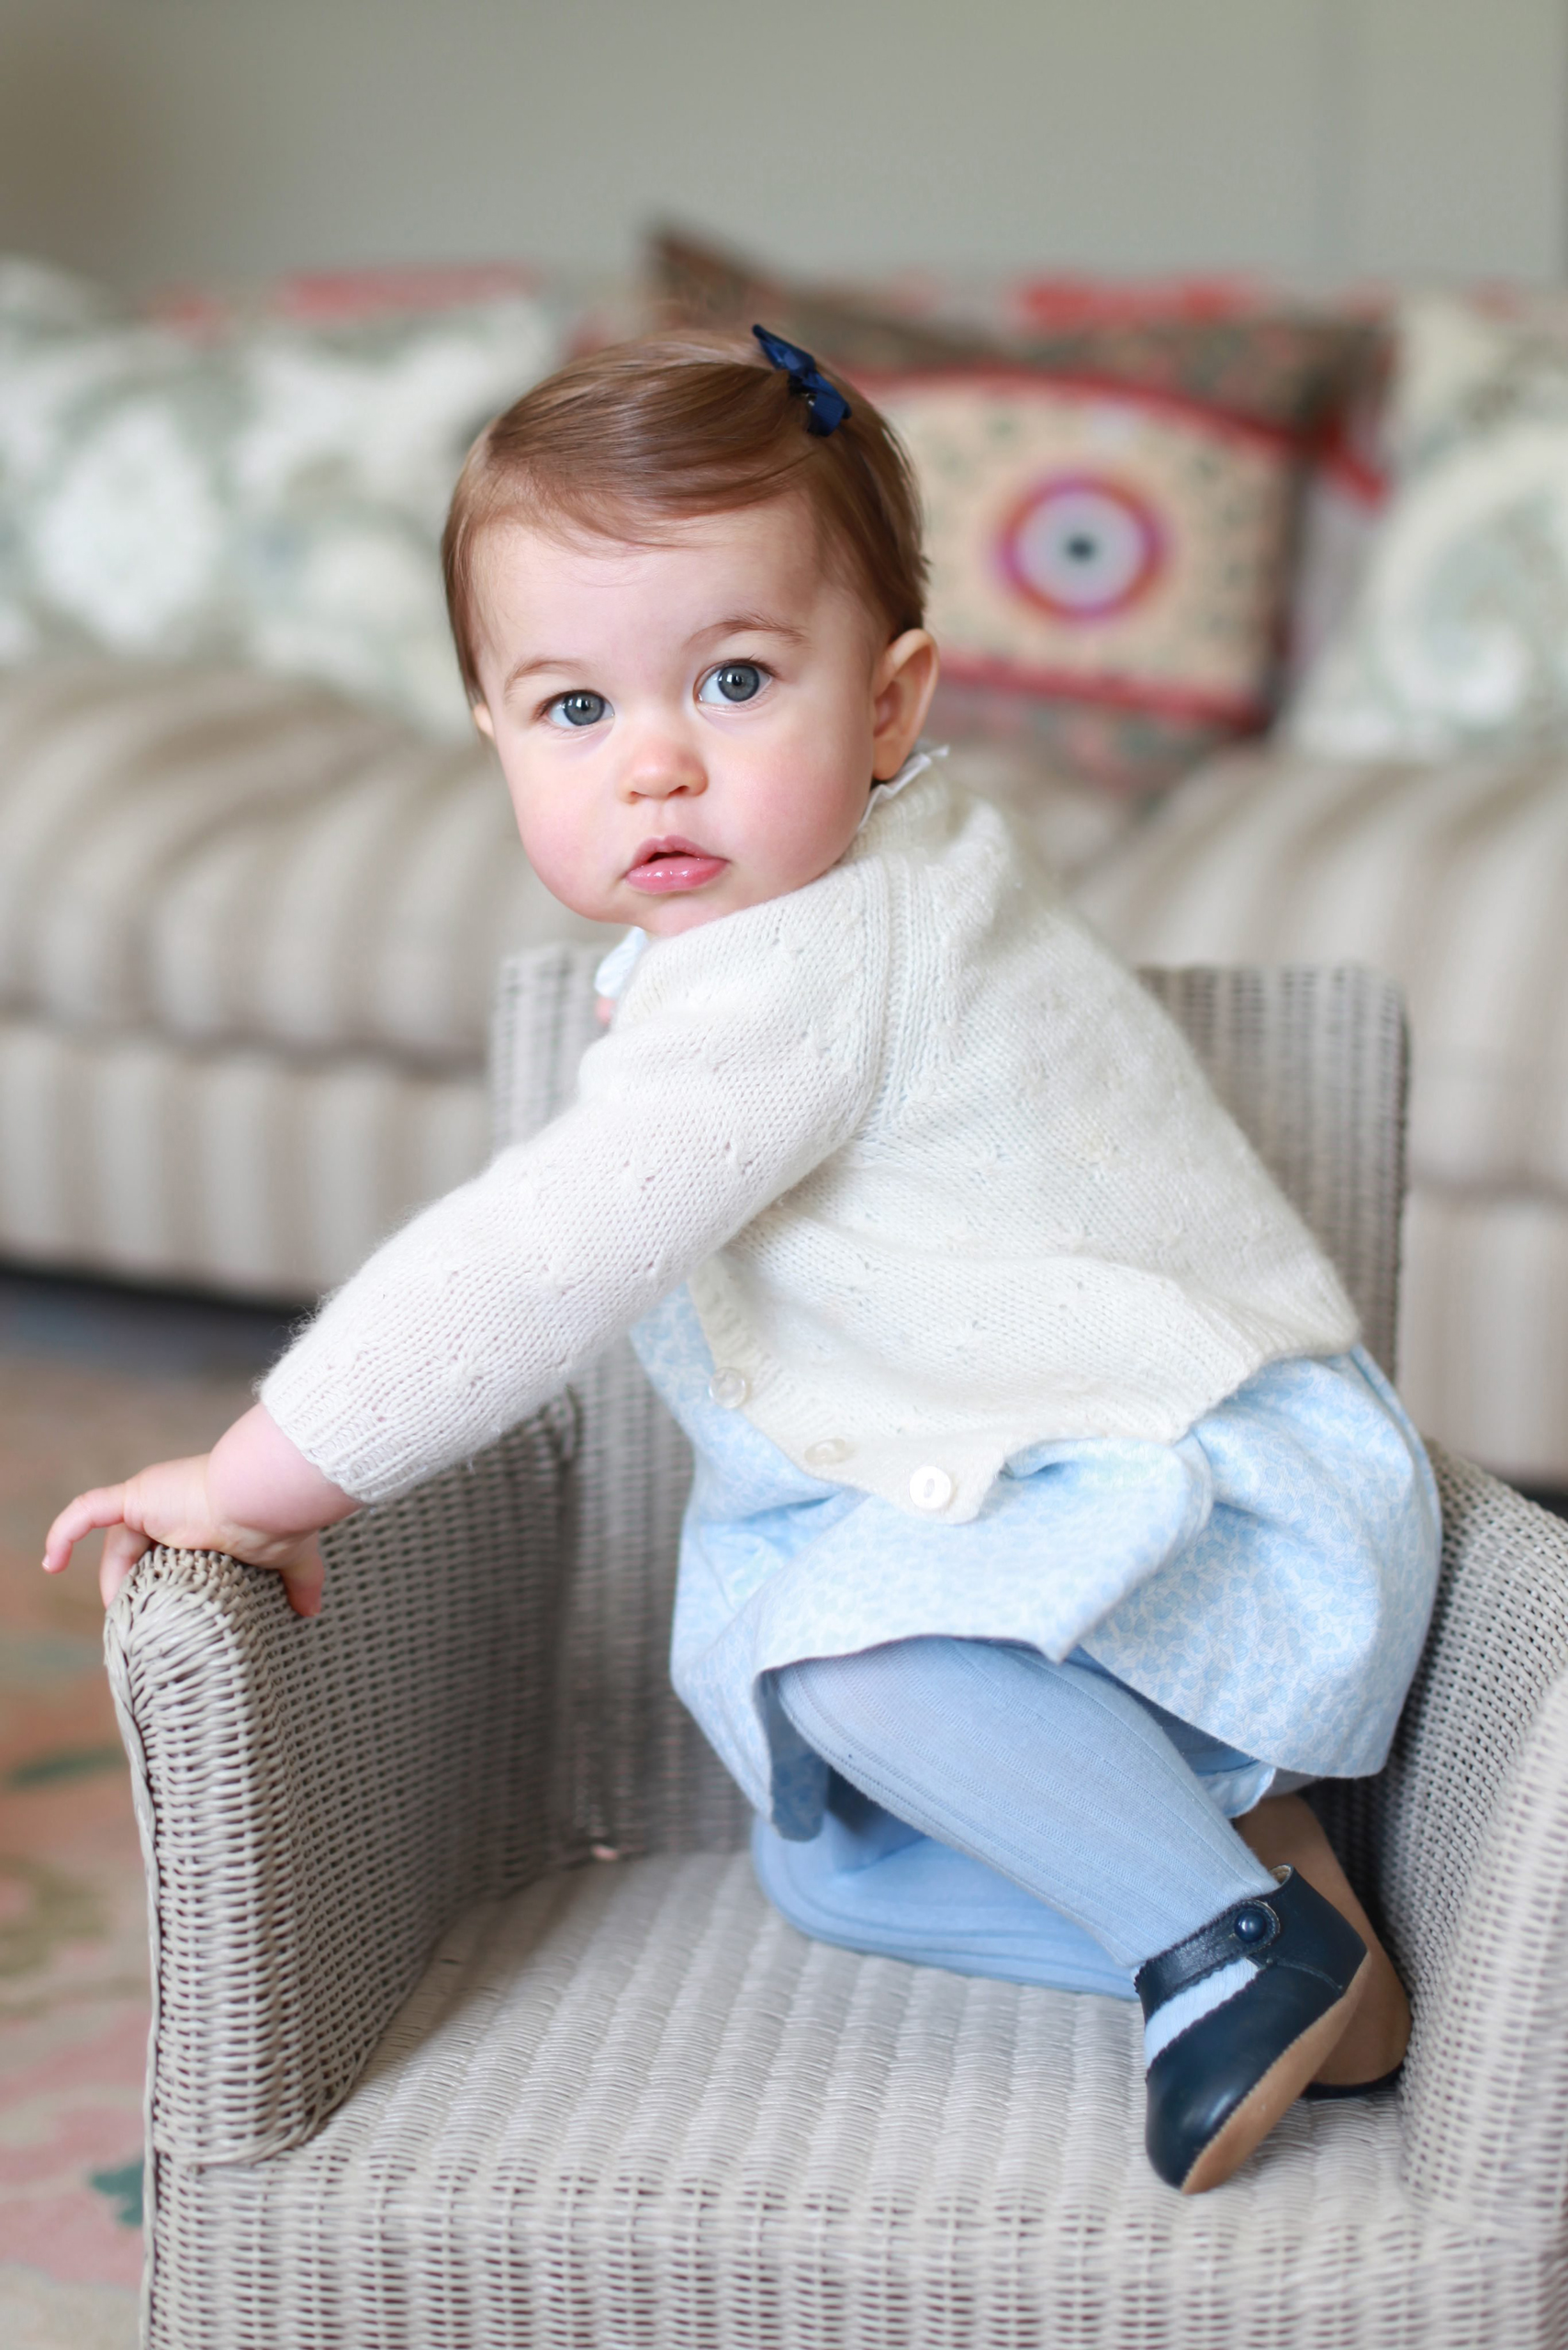 Princess Charlotte at Anmer Hall in Norfolk, U.K., in a photo made available by the Duke and Duchess of Cambridge on May 1, 2016.